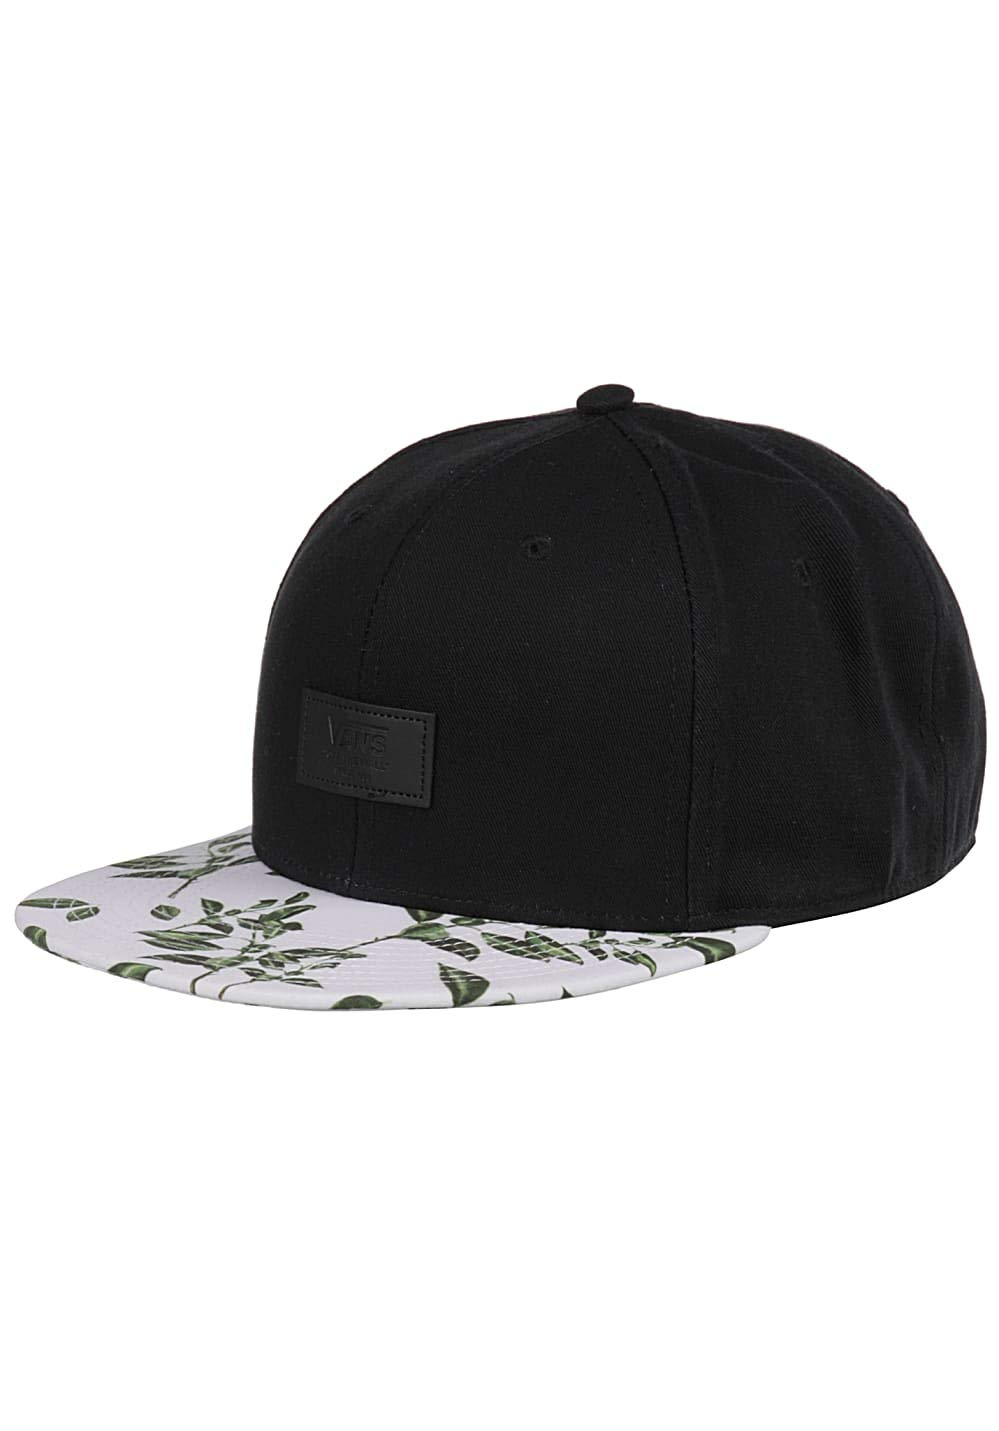 Vans Gorras Allover It Black/Rubber Snapback: Amazon.es: Ropa y ...